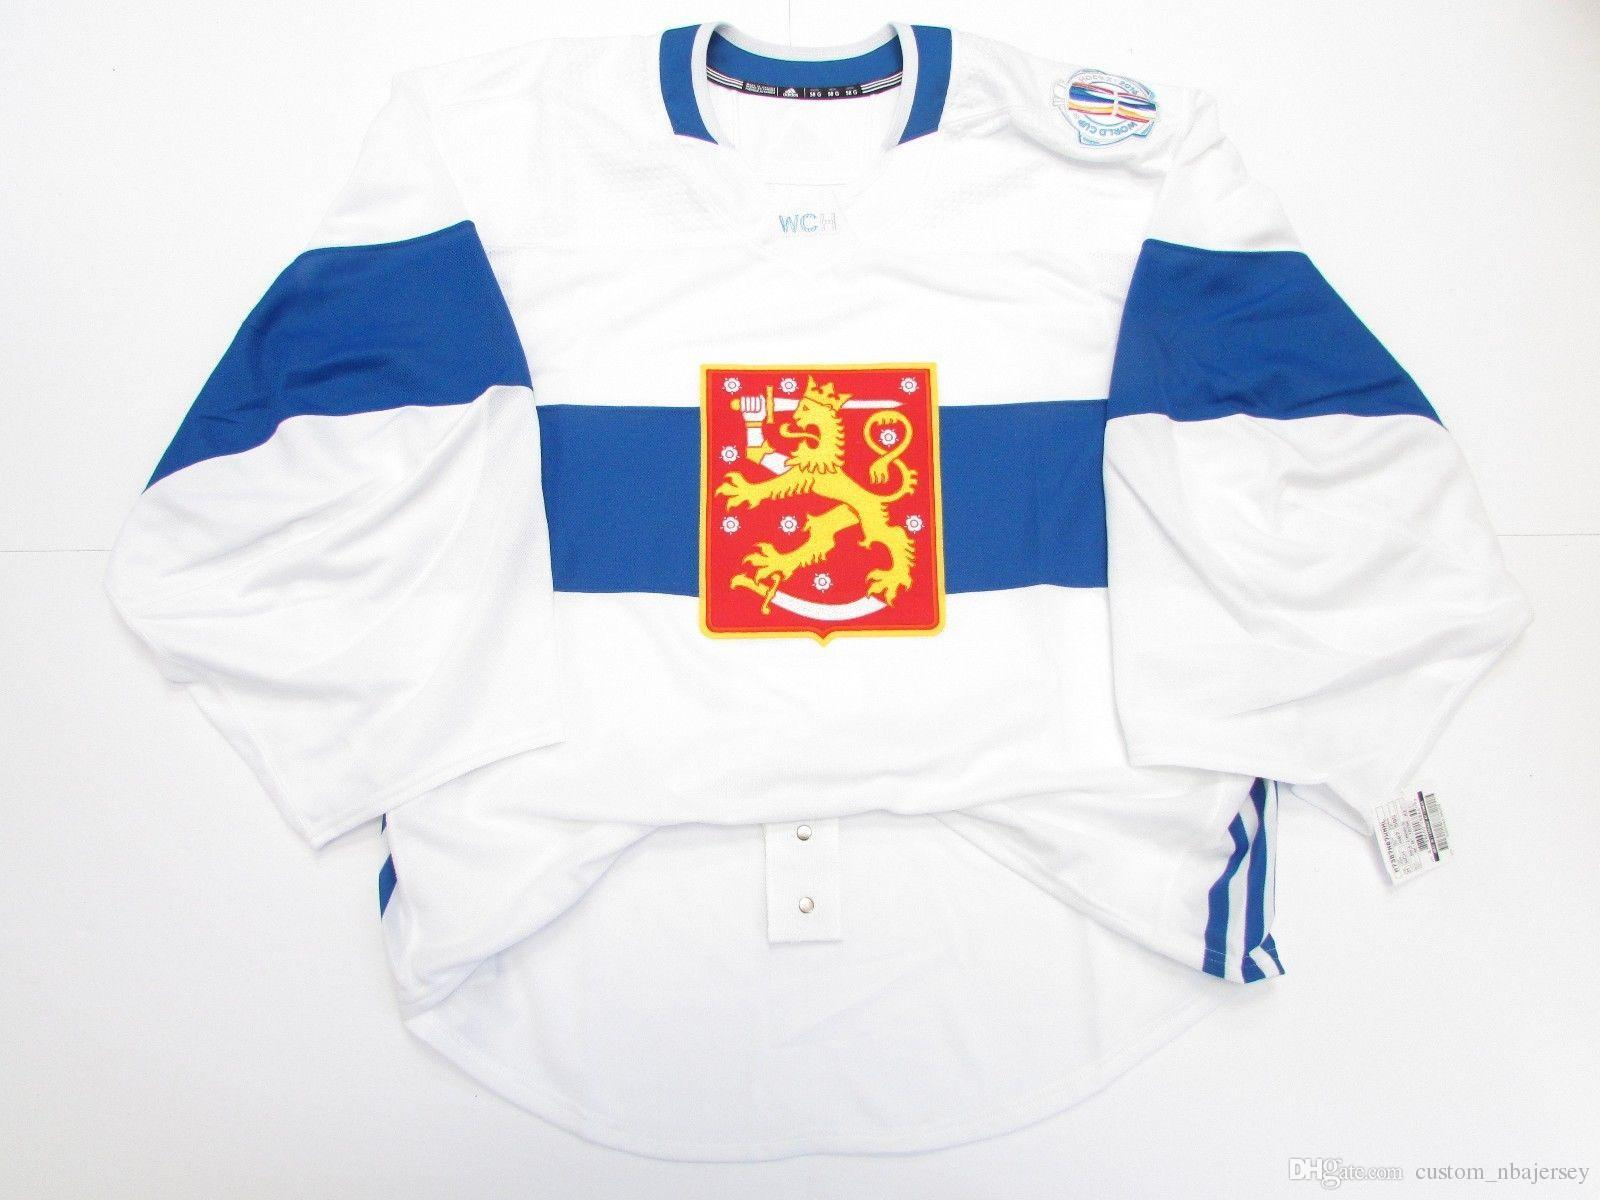 83b6ce1ee 2019 Cheap Custom FINLAND WHITE 2016 WORLD CUP OF HOCKEY JERSEY GOALIE CUT  58 Stitch Add Any Number Any Name Mens Hockey Jersey From Custom nbajersey